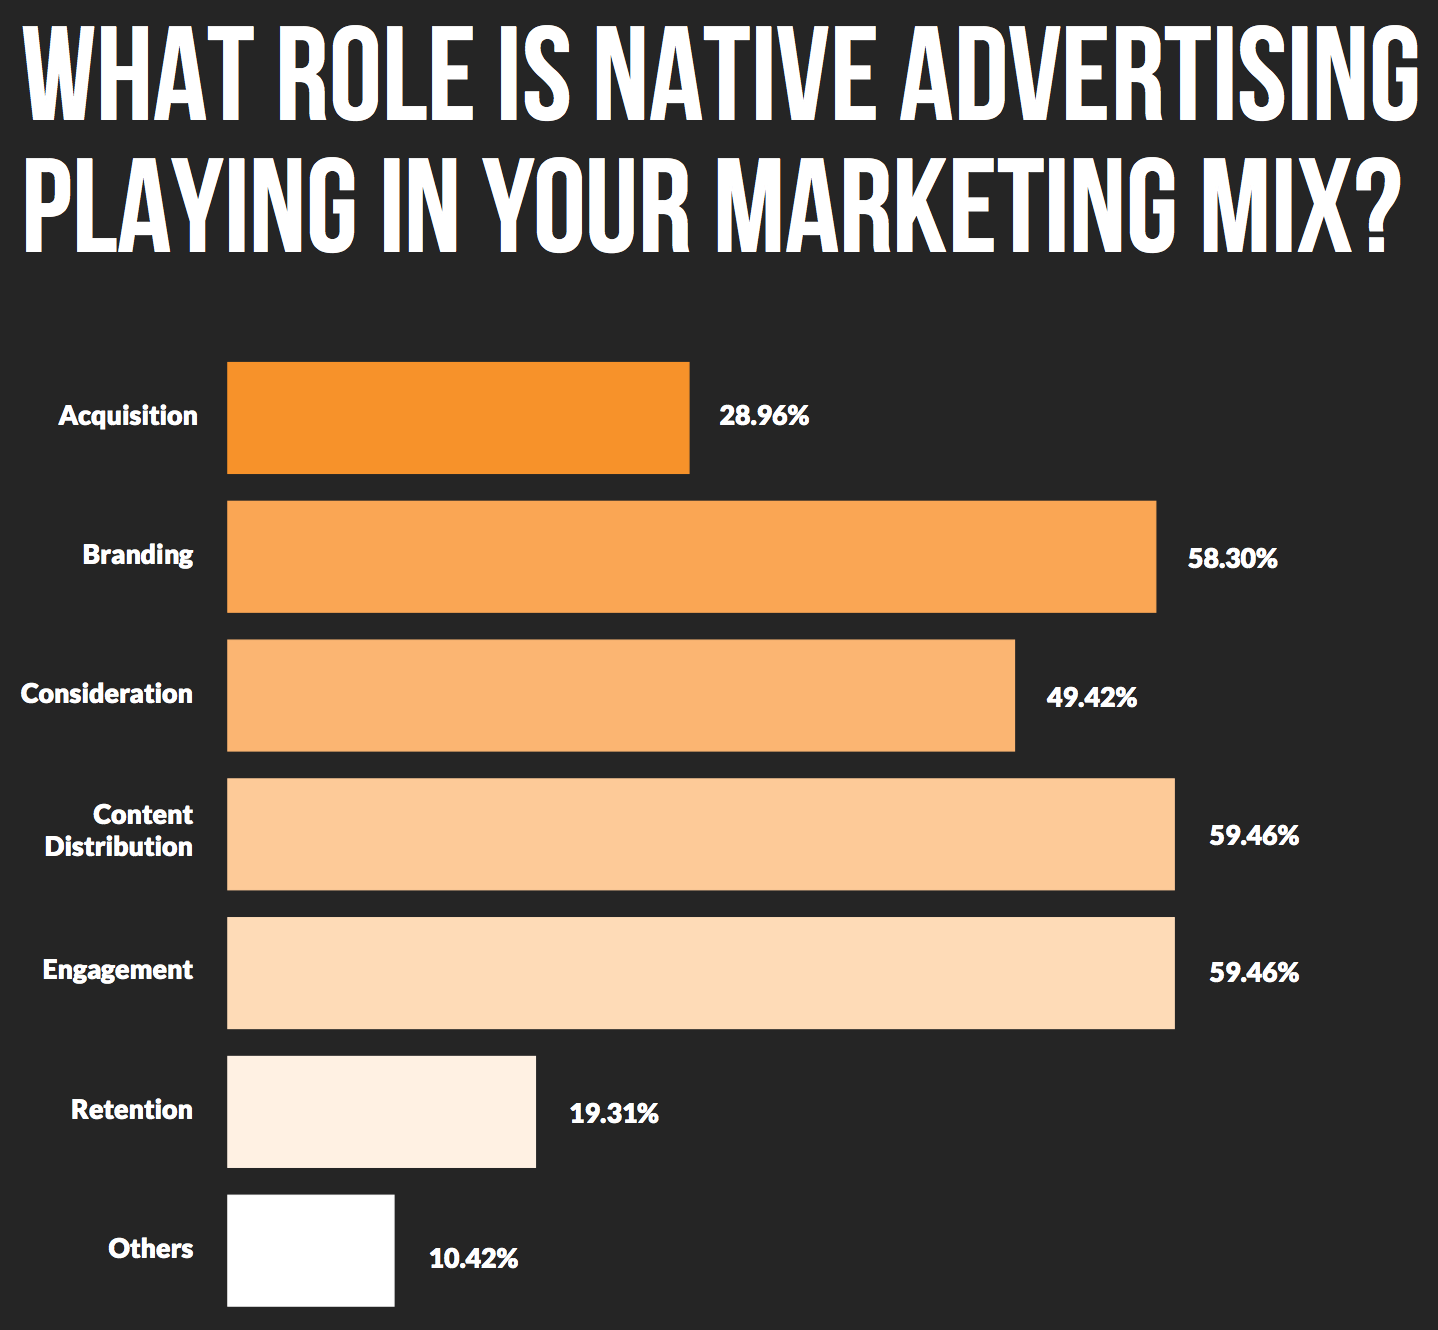 native ad use in apac